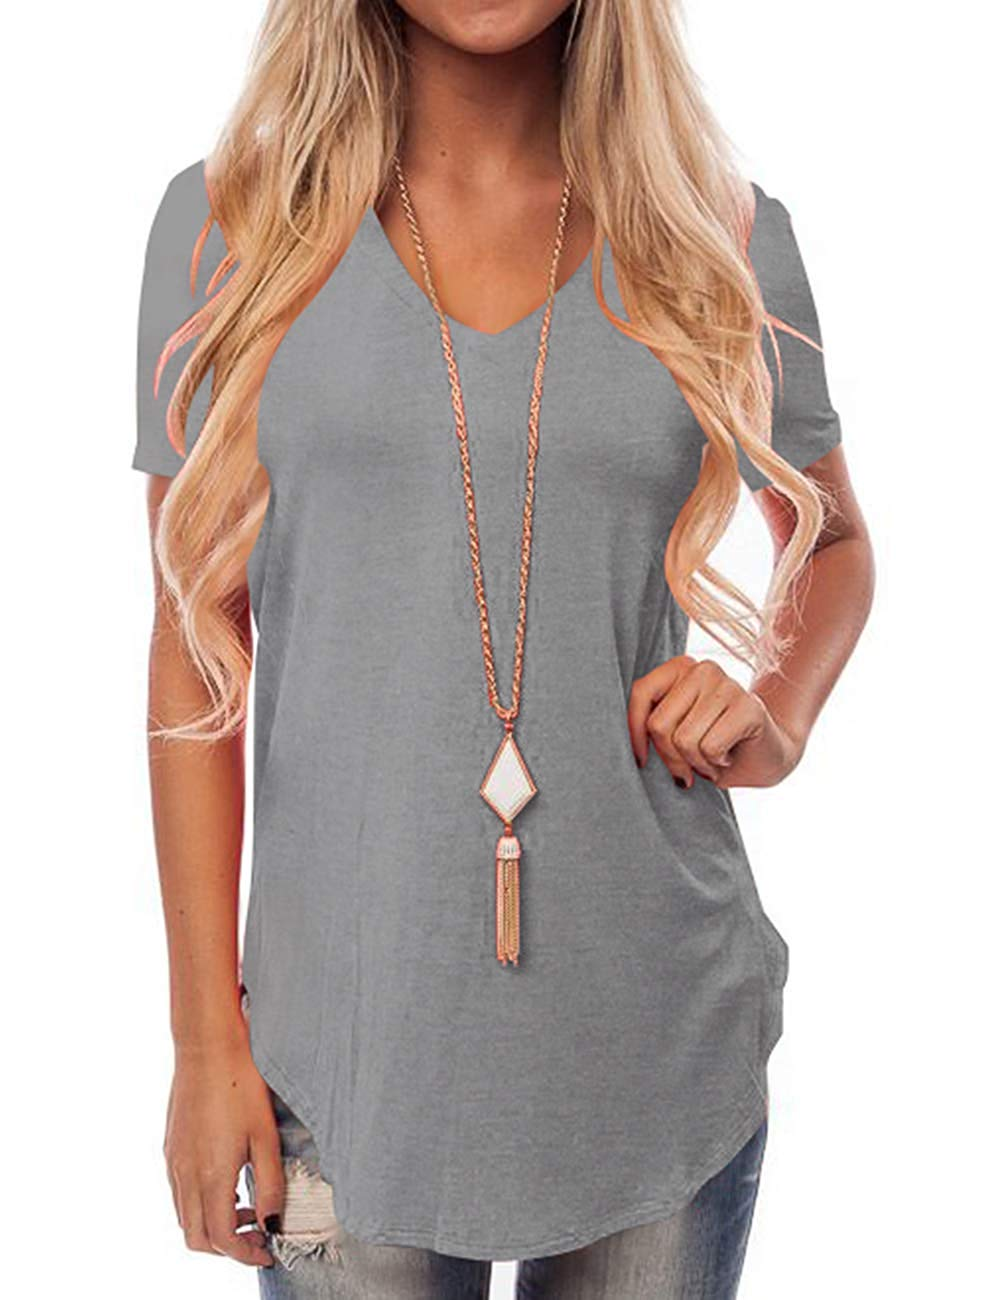 öCloseout DealsWomen's Short Sleeve V-Neck Loose Casual Tee T-Shirt Tops Three Quarter Full⌡